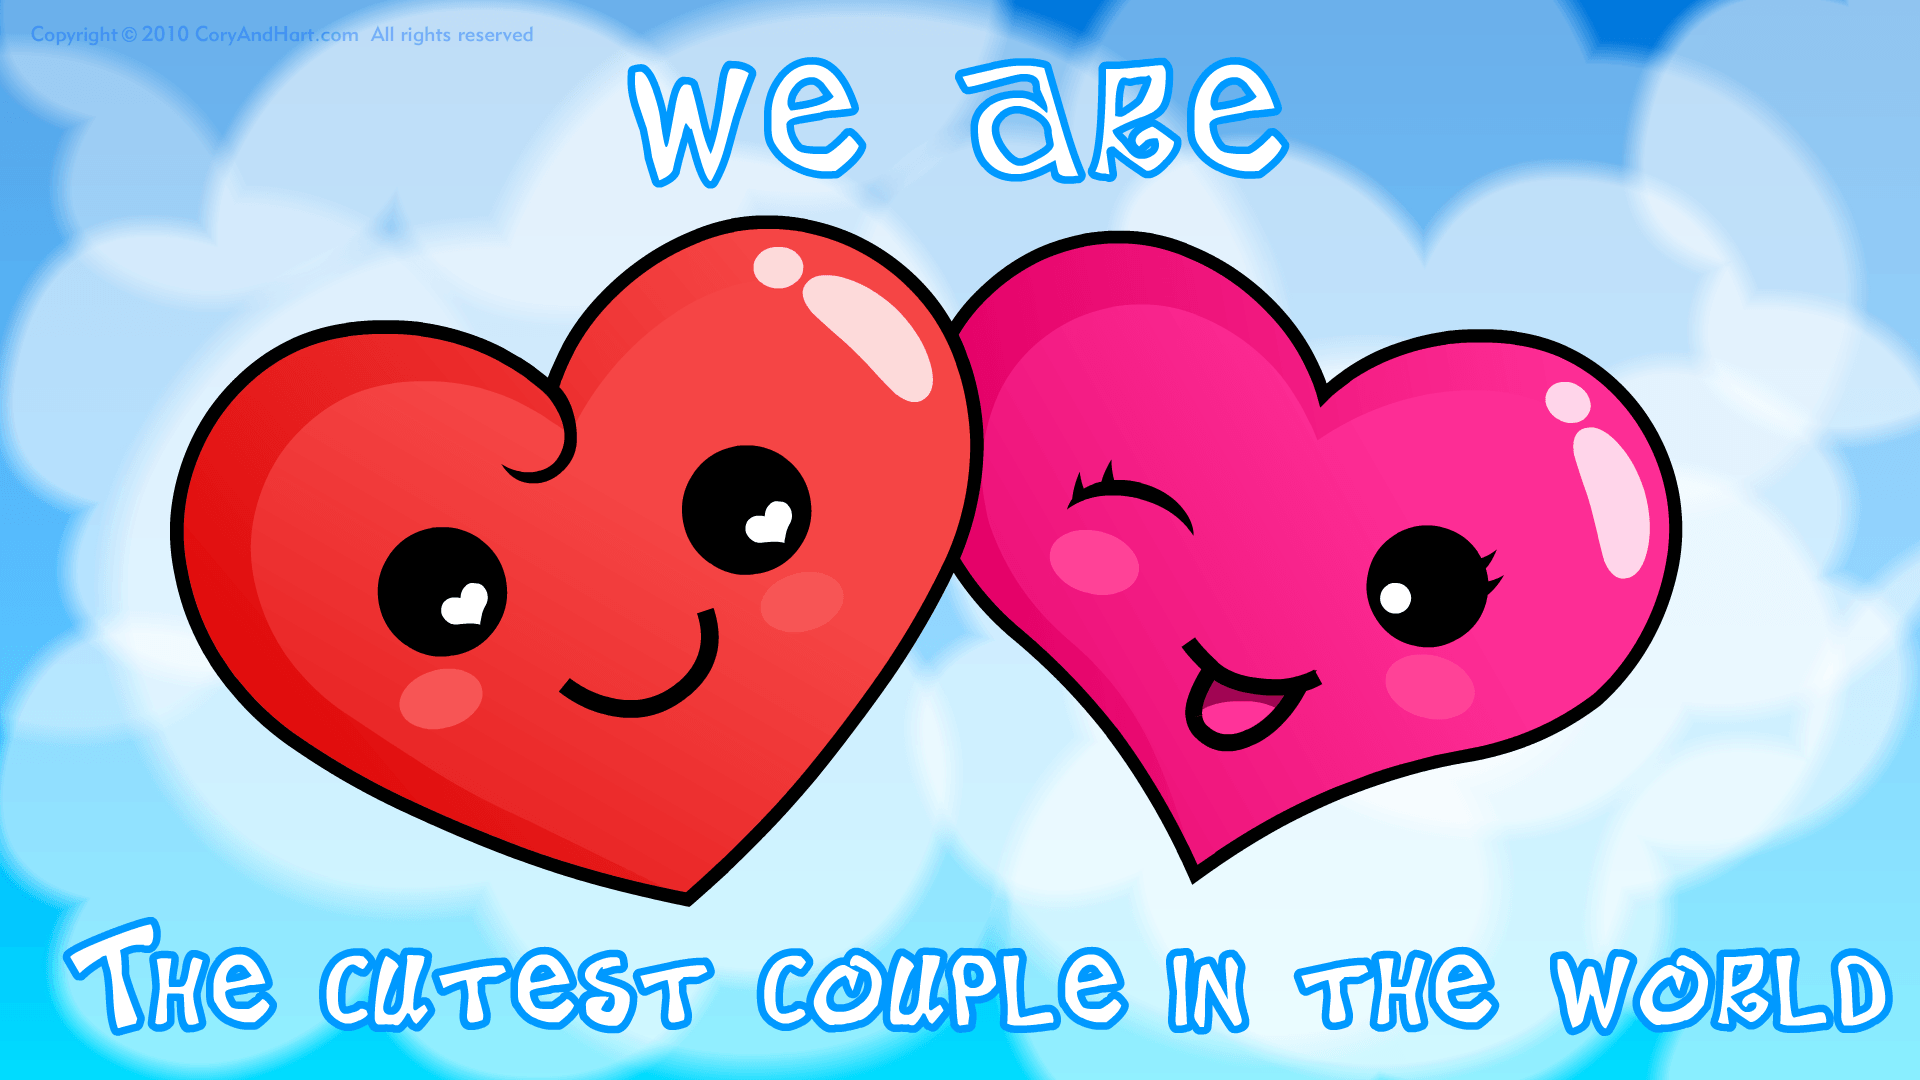 Love New cute cartoon Wallpaper : Free Love Wallpapers Gallery - Wallpaper cave